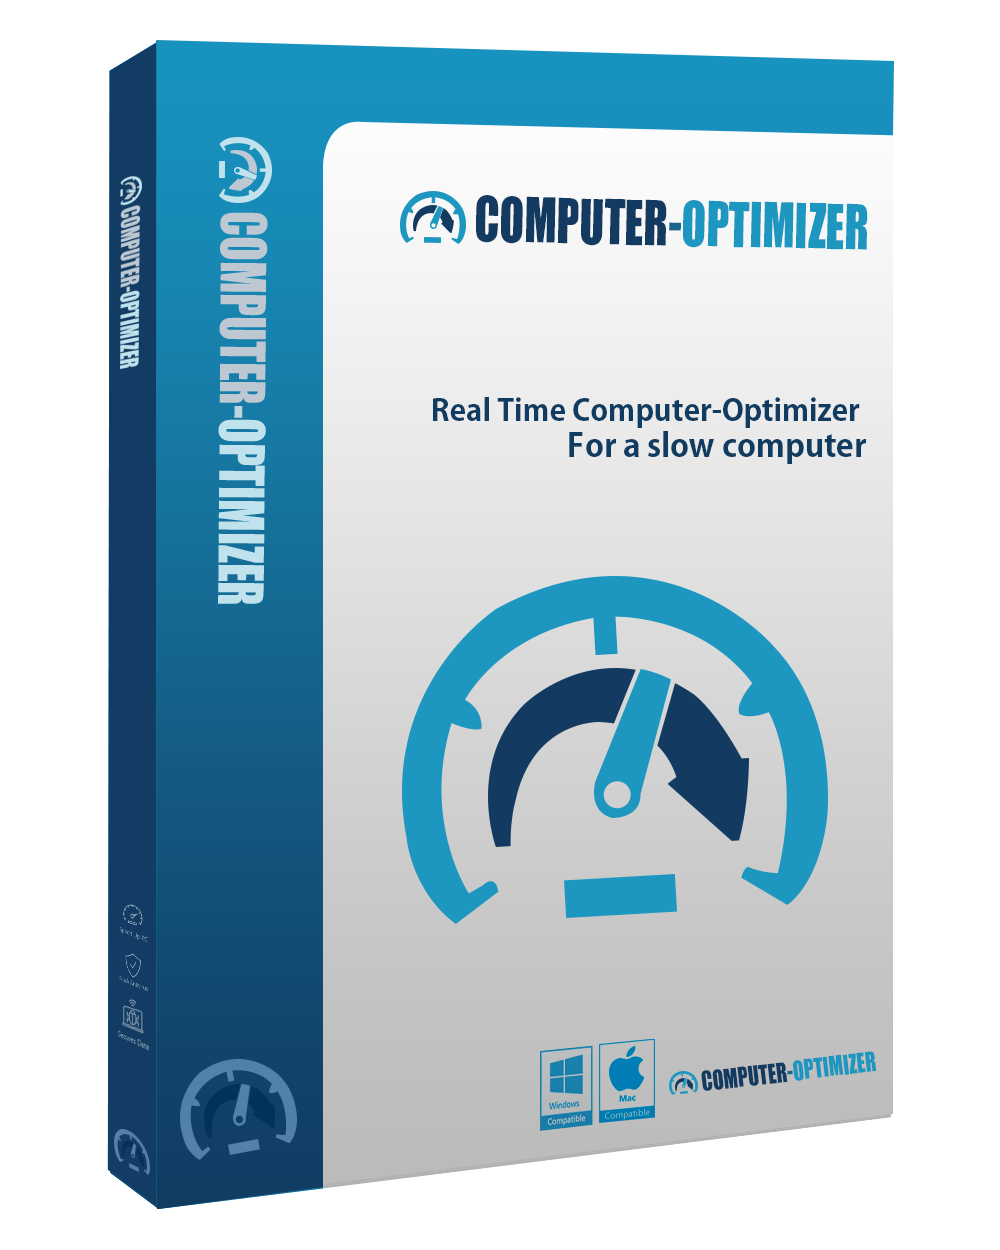 computer otimizer: download now